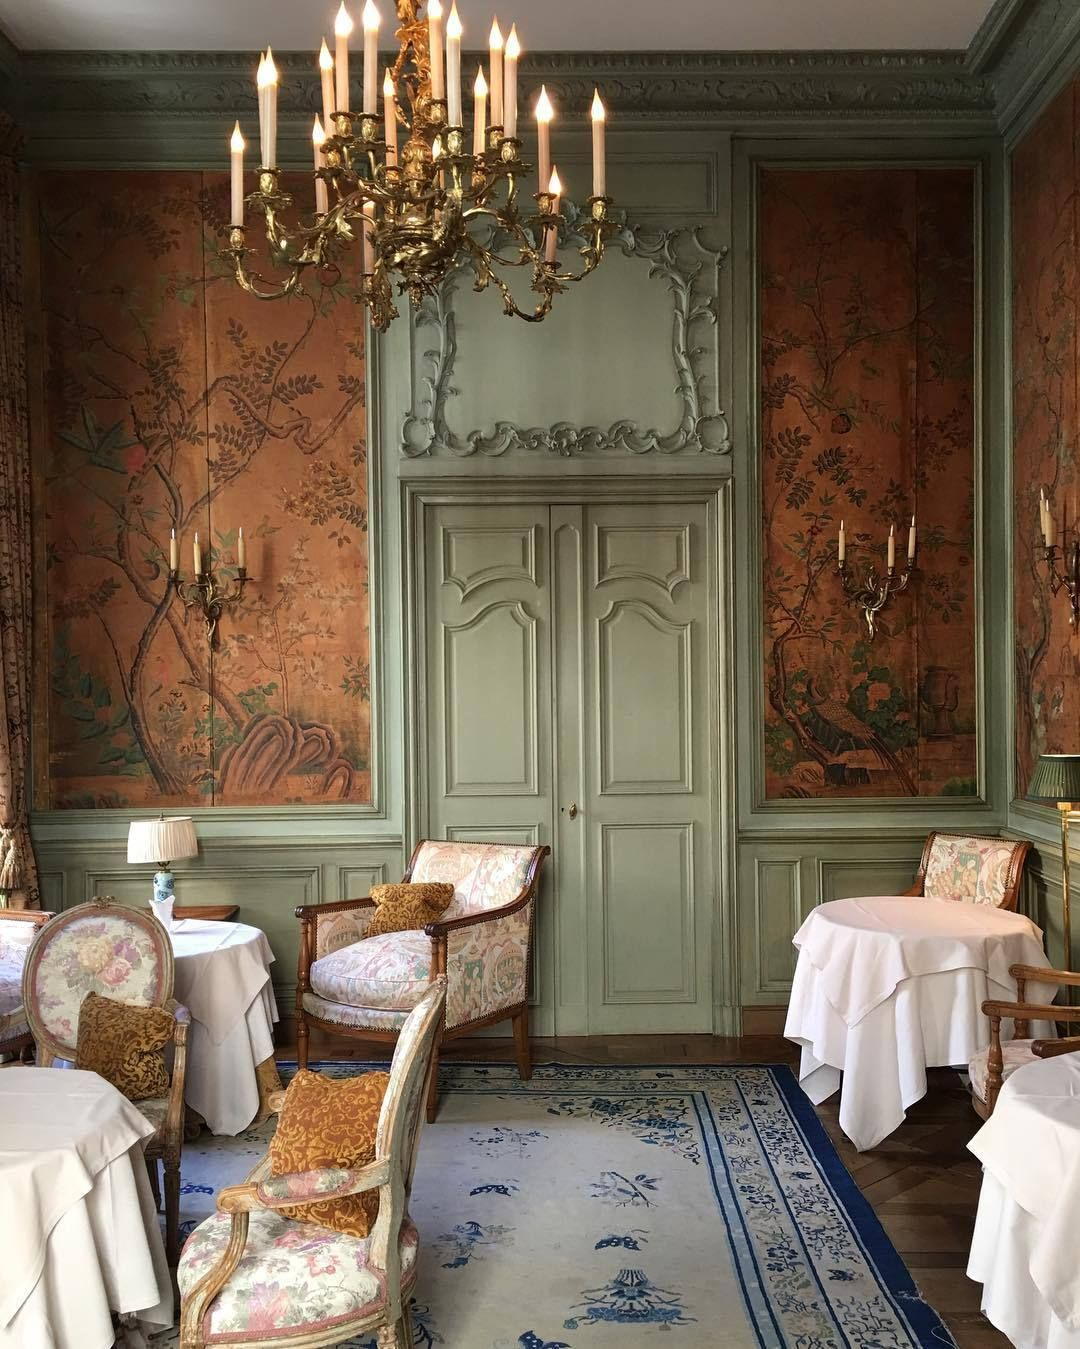 andantegrazioso charming tea room la mirande avignon aycasarc heim herd pinterest. Black Bedroom Furniture Sets. Home Design Ideas